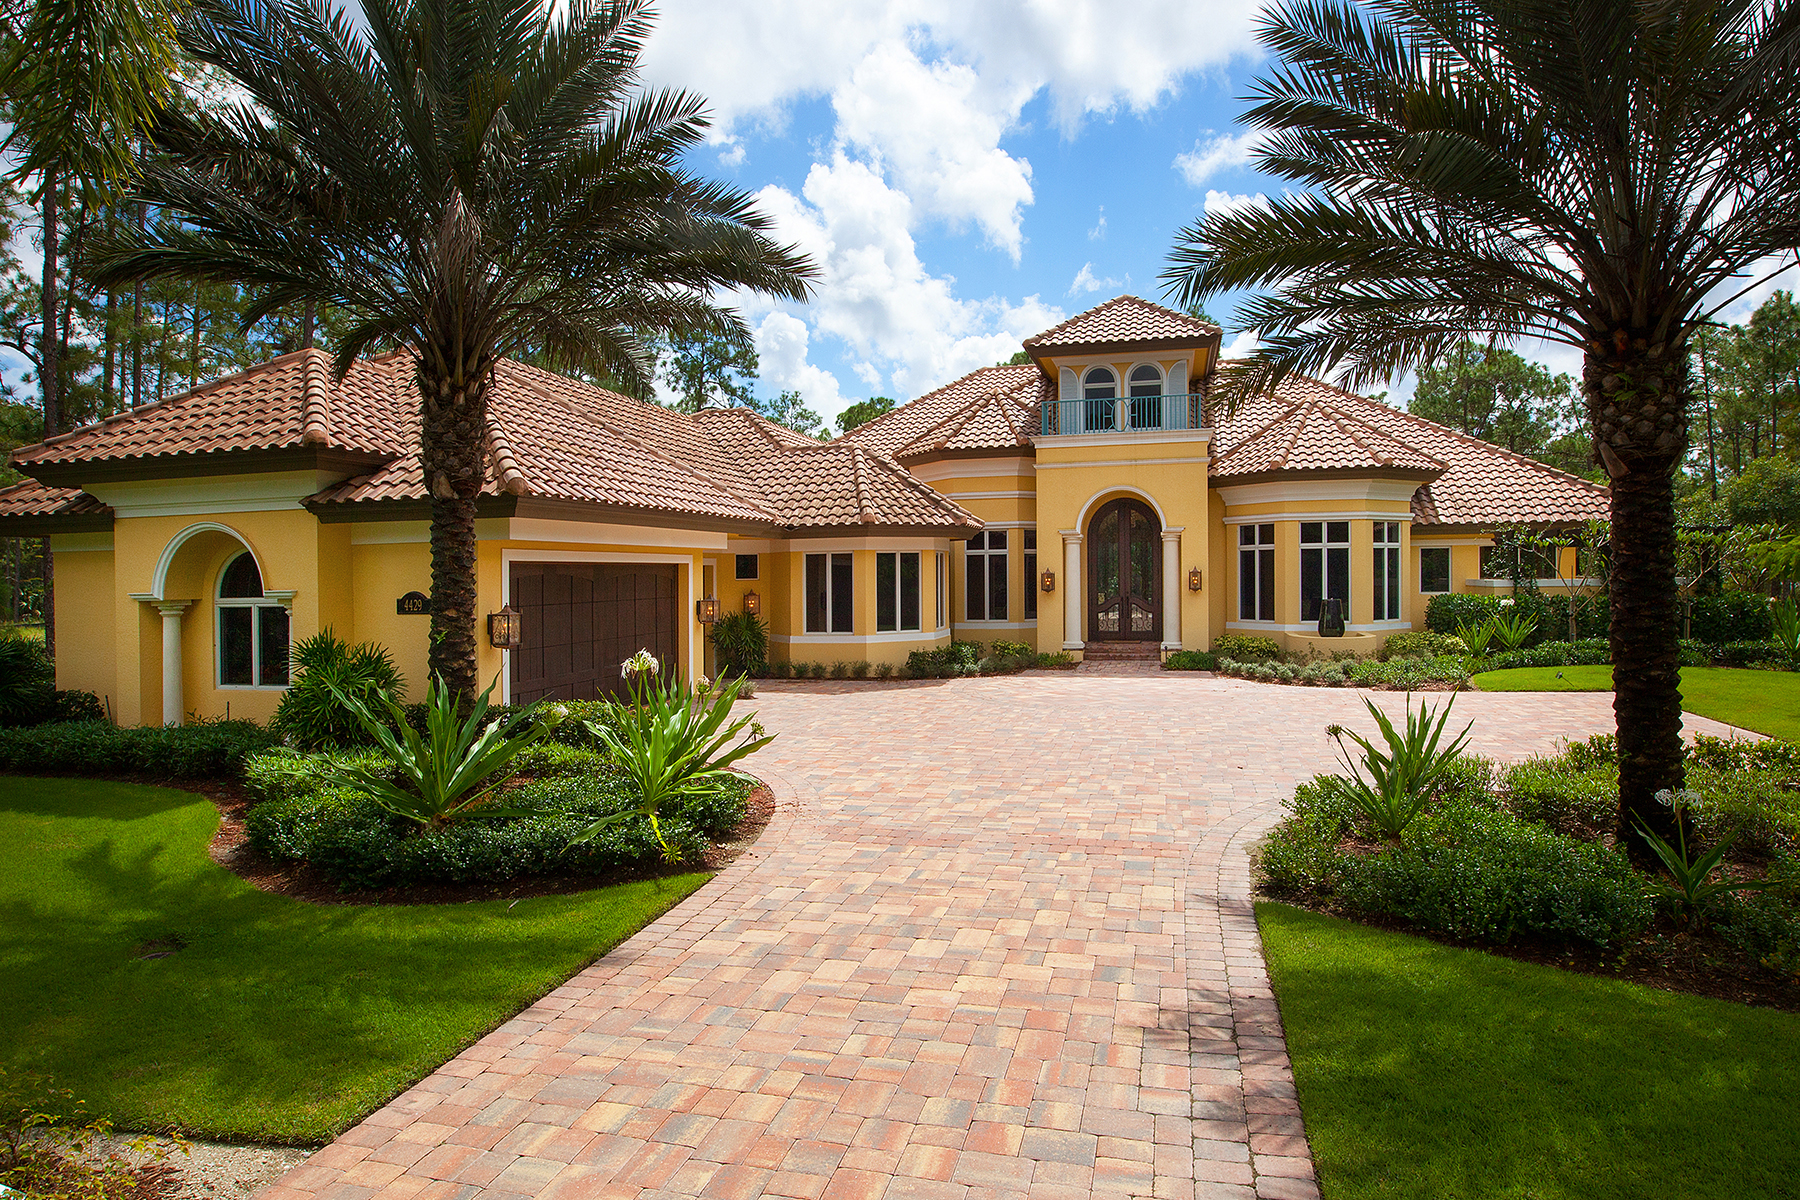 Single Family Home for Sale at NAPLES - NAPLES CLUB ESTATES 4429 Club Estates Dr Naples, Florida 34112 United States